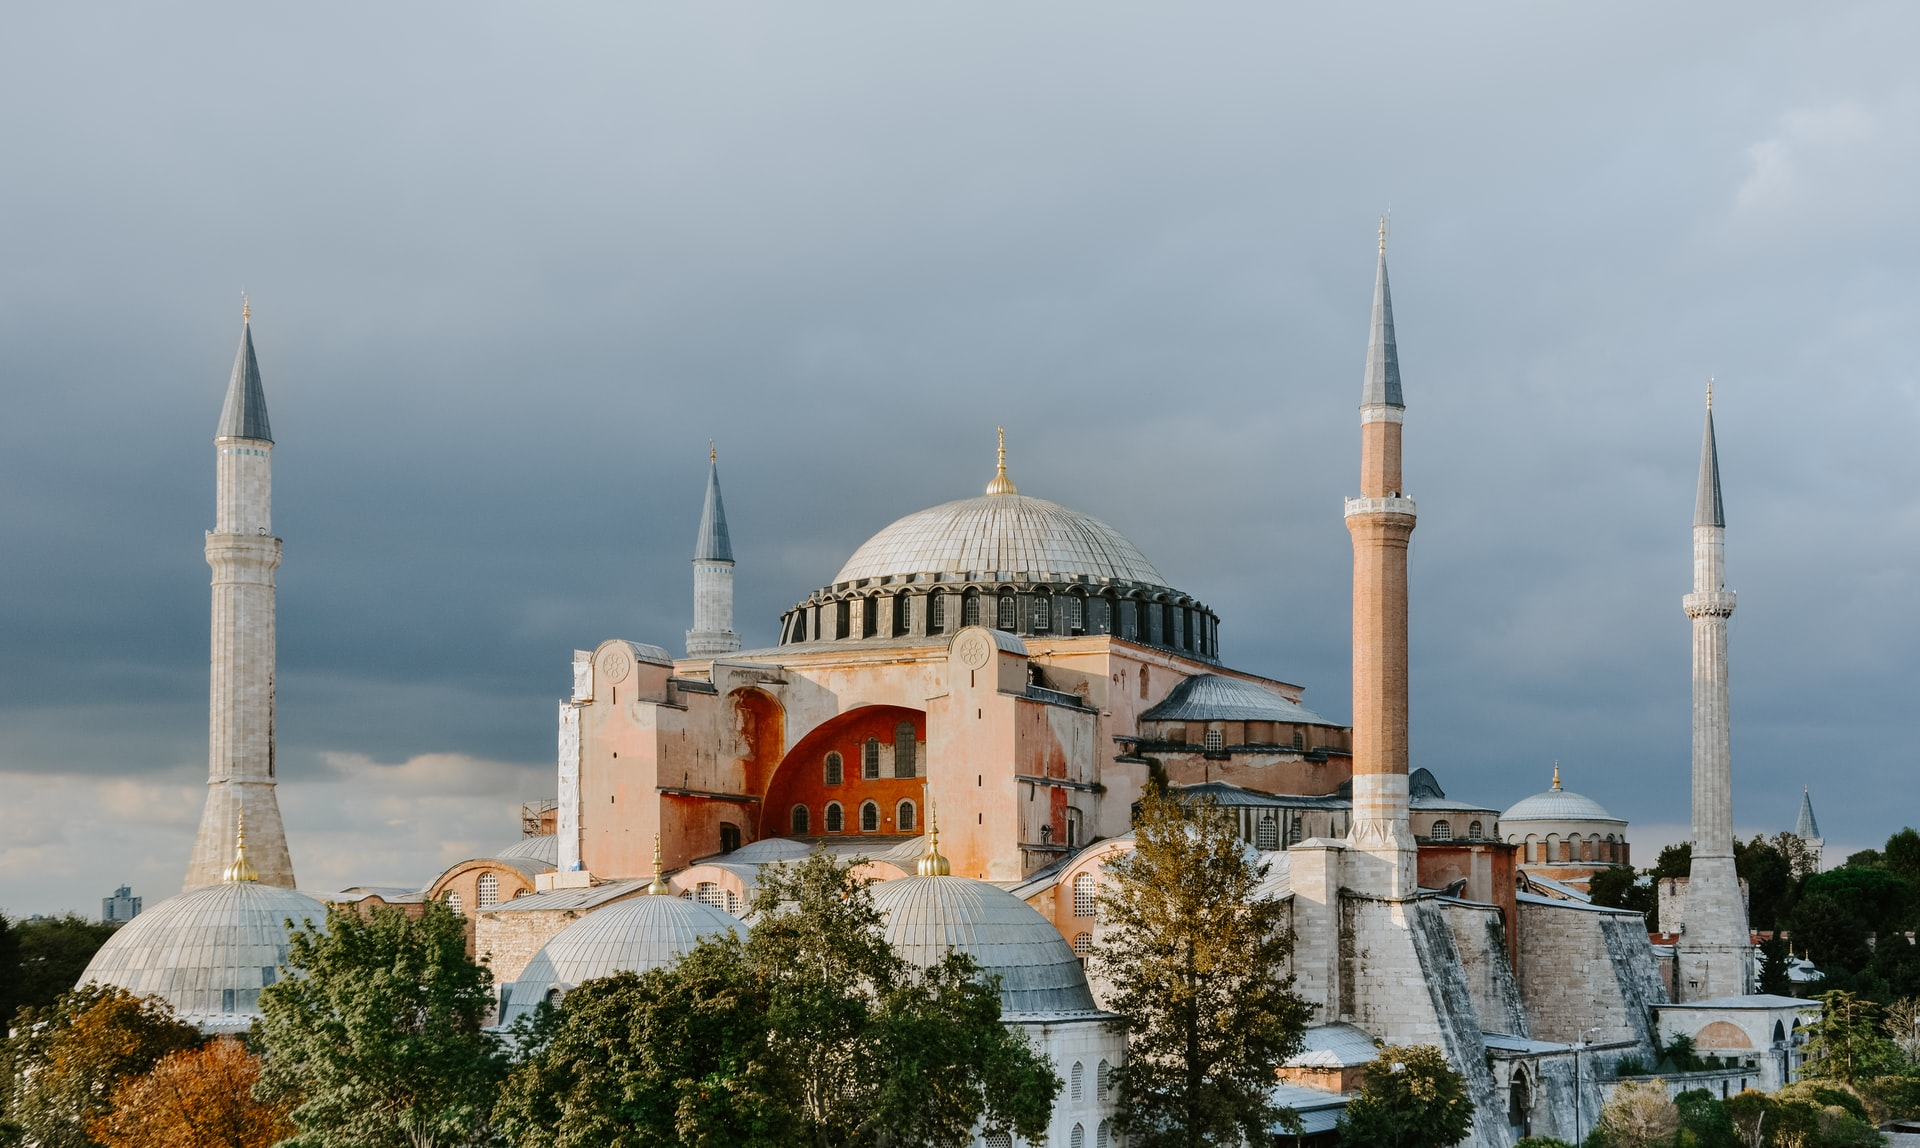 Hagia Sophia, foreign Christians targeted in Turkey